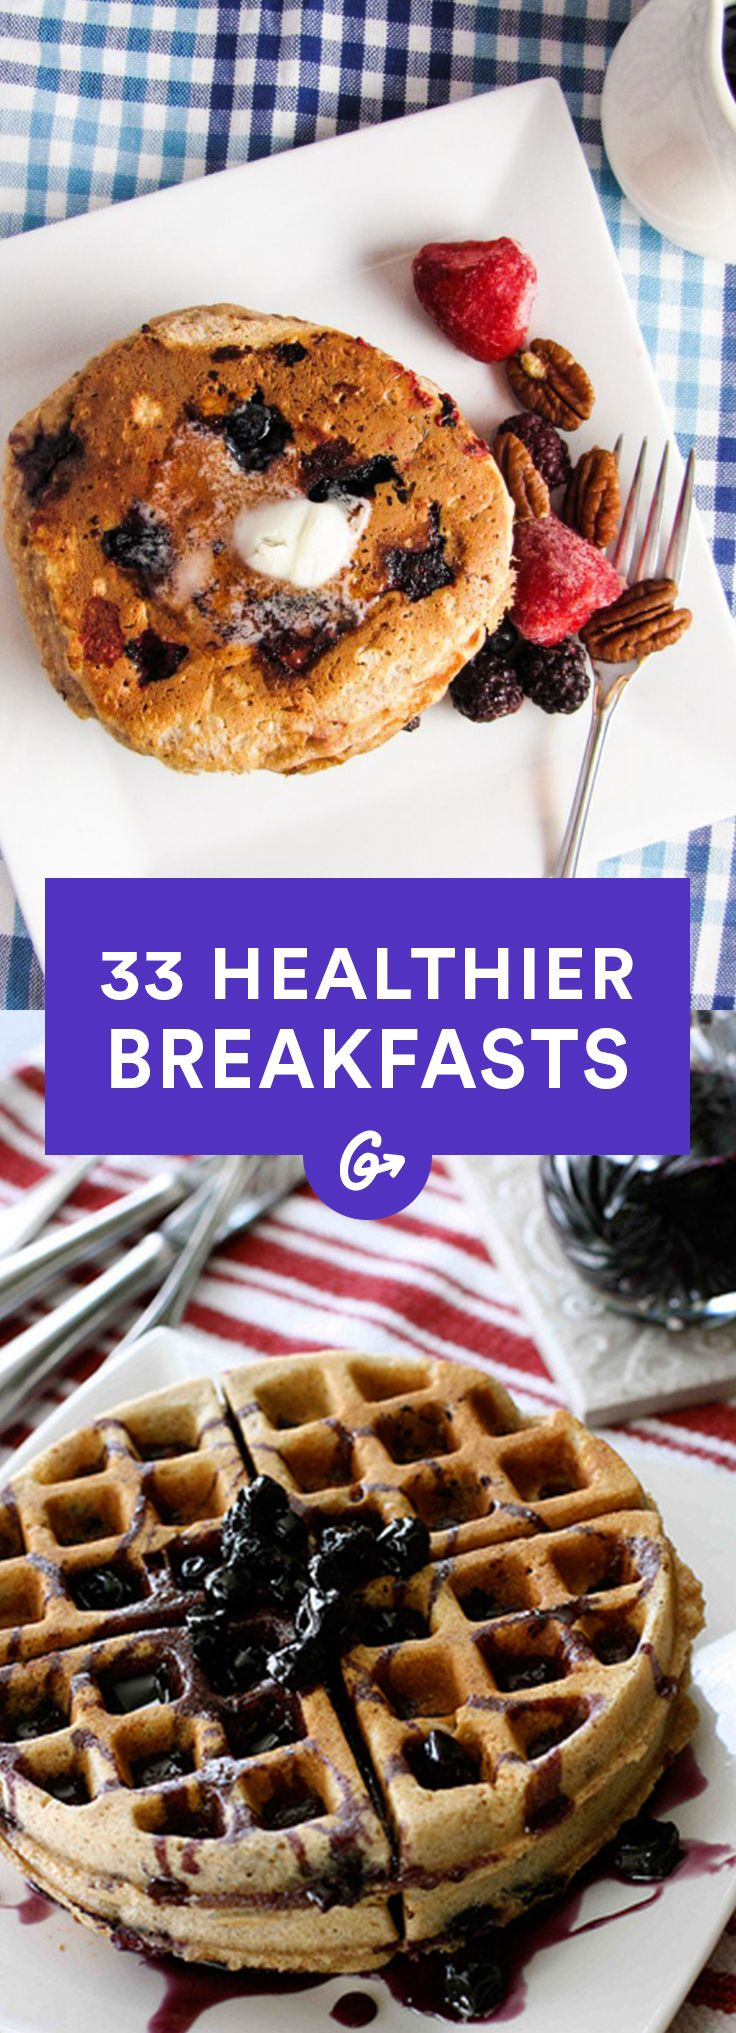 Breakfast is the most important meal of the day, so don't waste it on sugary junk!  #healthy #breakfast #recipes http://greatist.com/health/33-healthier-breakfast-alternatives